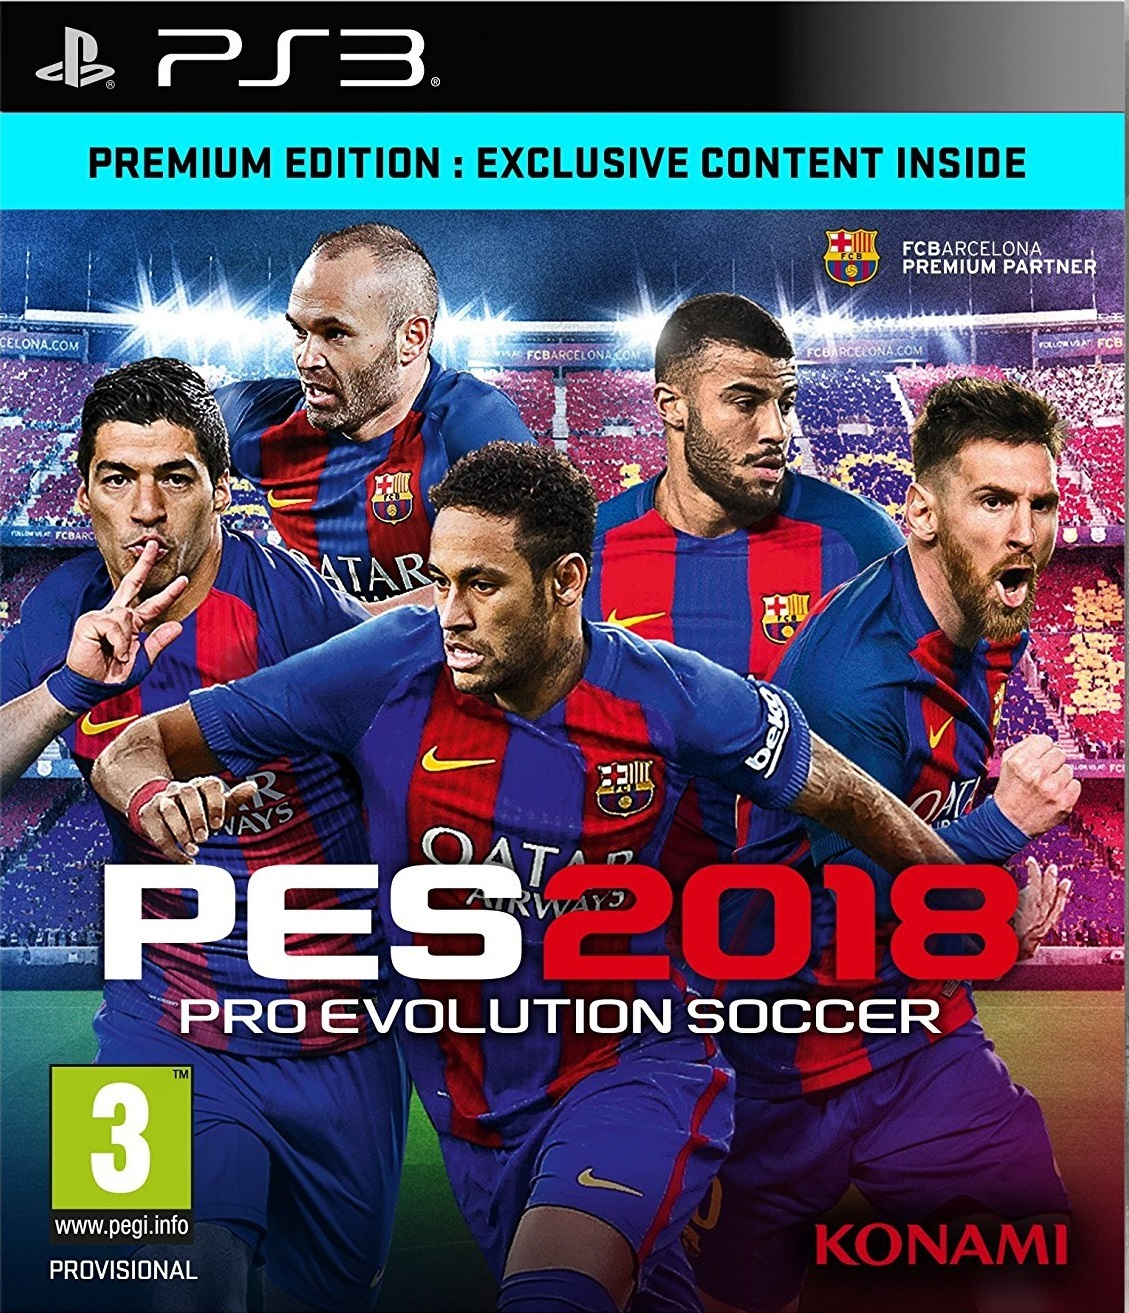 Pro Evolution Soccer 2018 Premium Edition for PS3 image